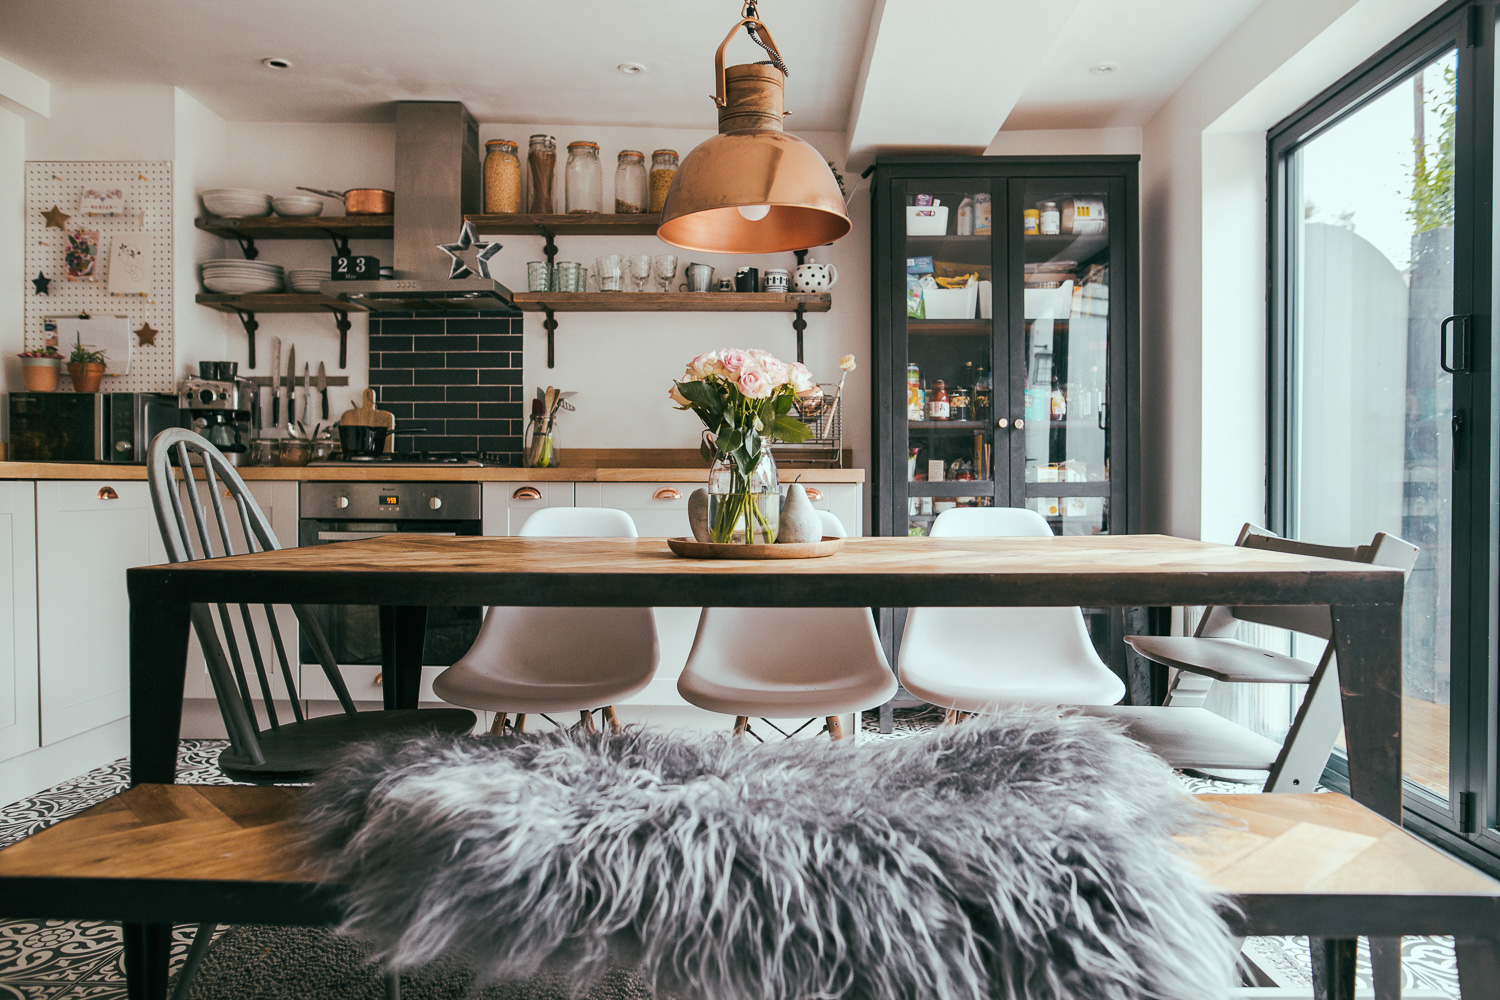 Blog and social media content for Hygge For Home